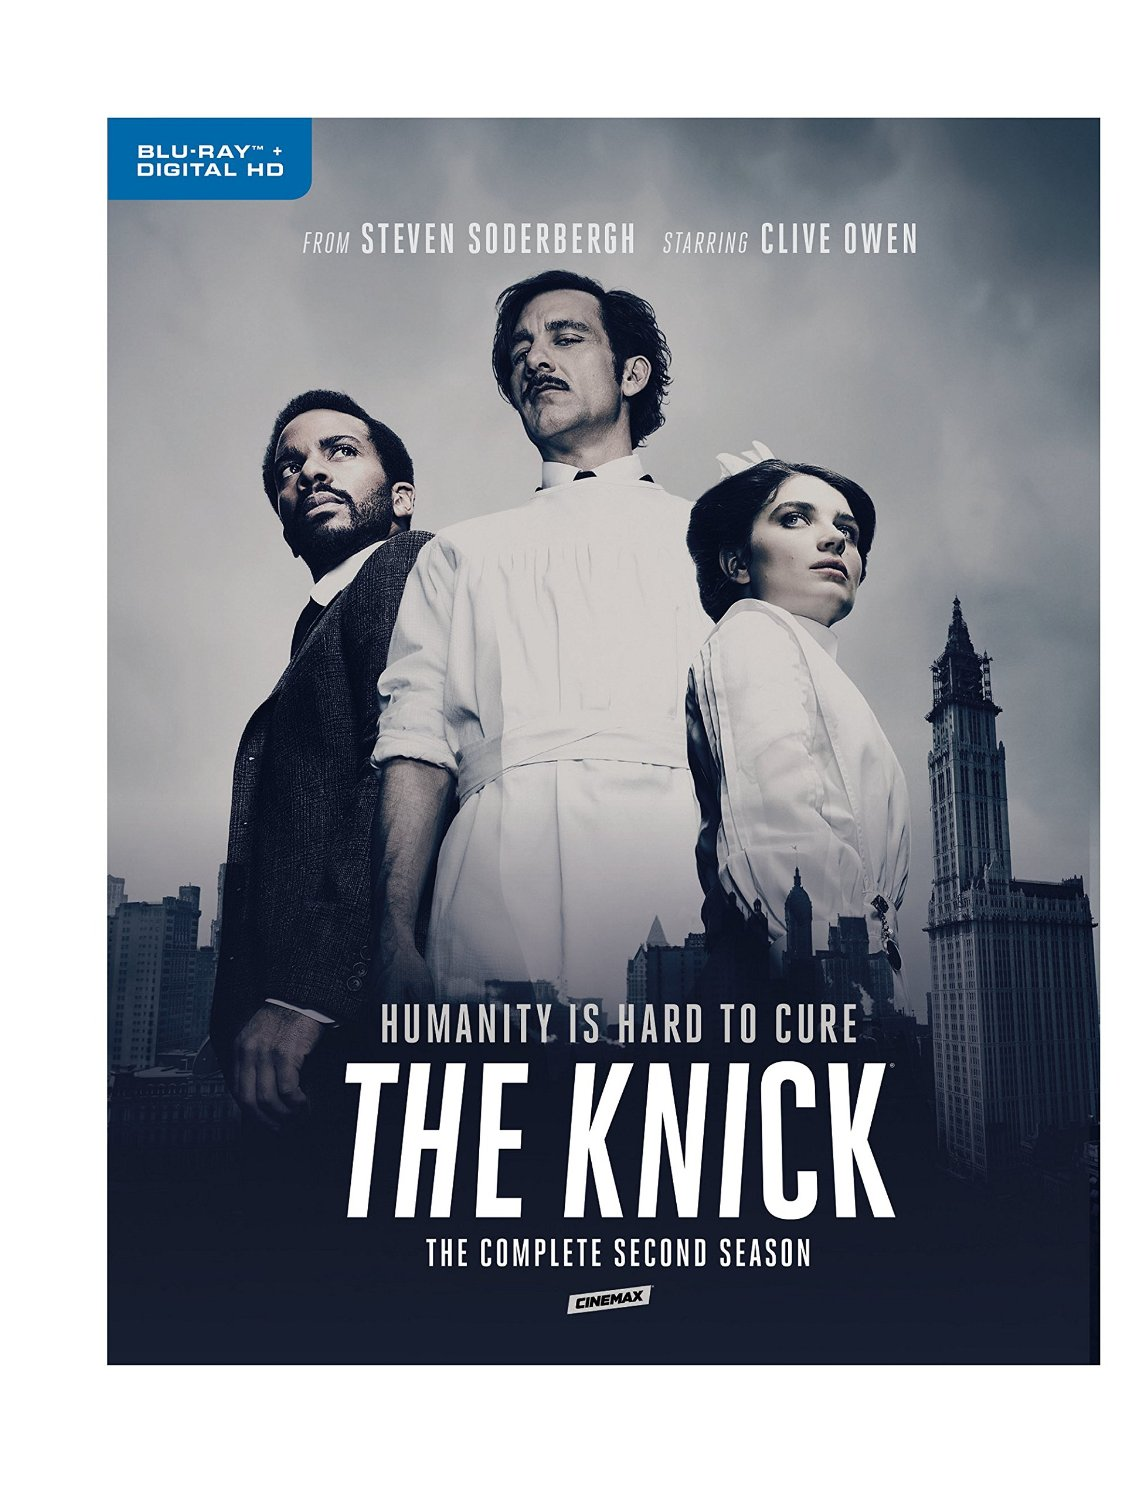 The Knick [TV Series] - The Knick: The Complete Second Season